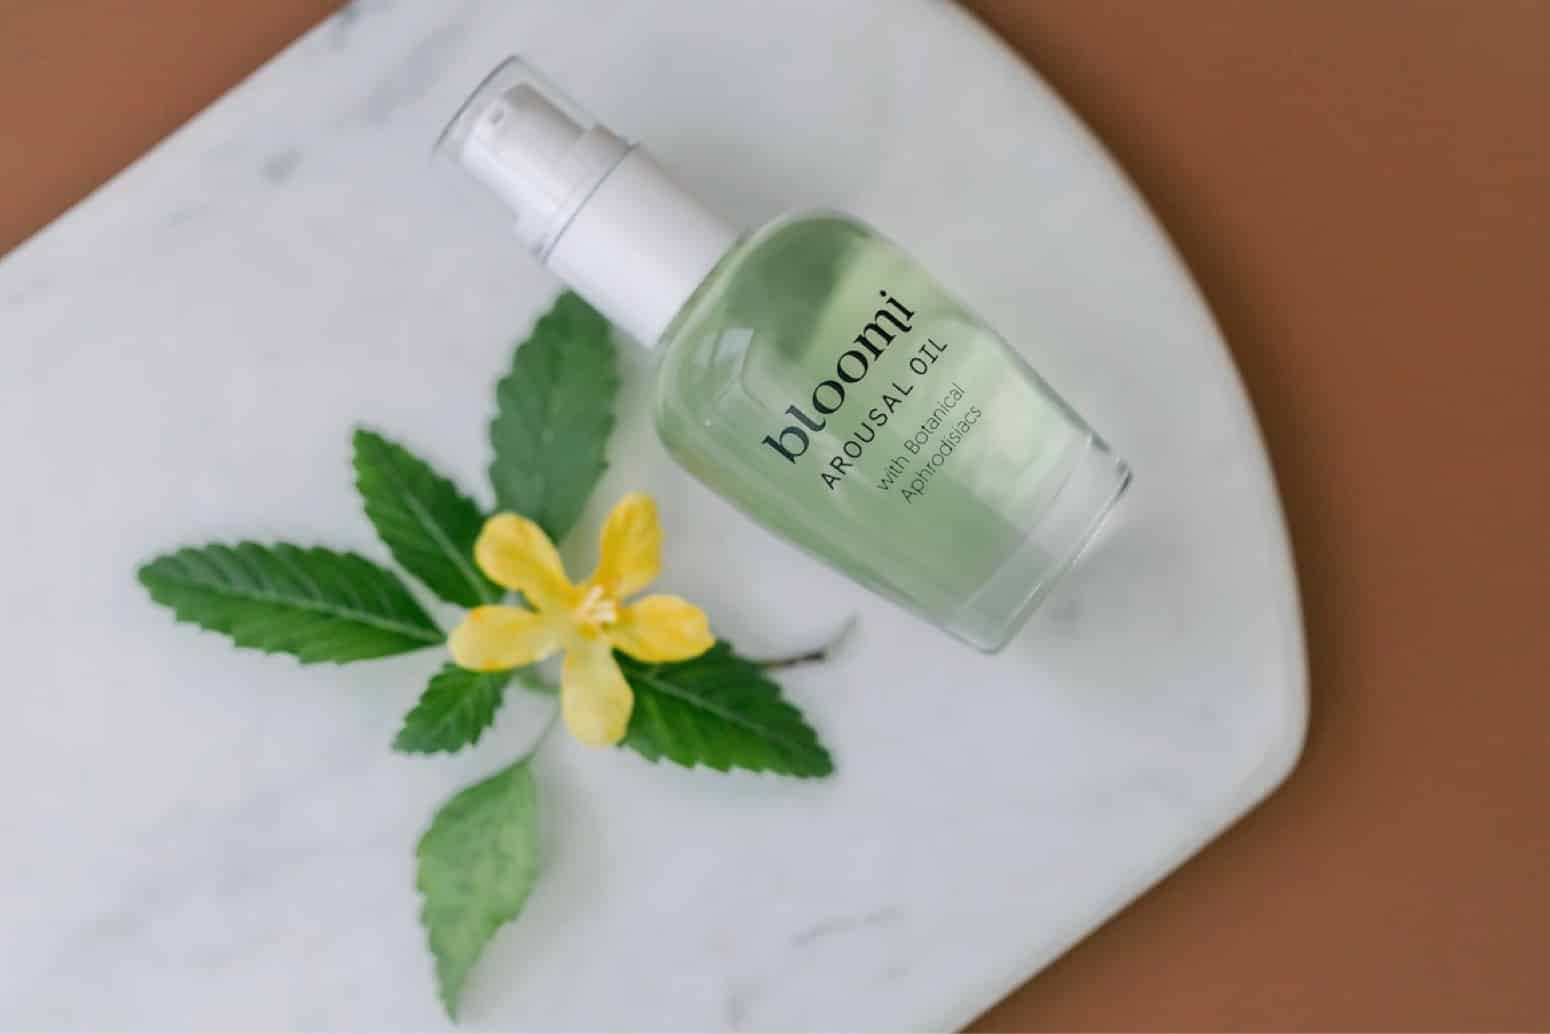 The Bloomi Arousal Oil product lays on a marble surface with a damiana flower–one of the key ingredients–nearby.